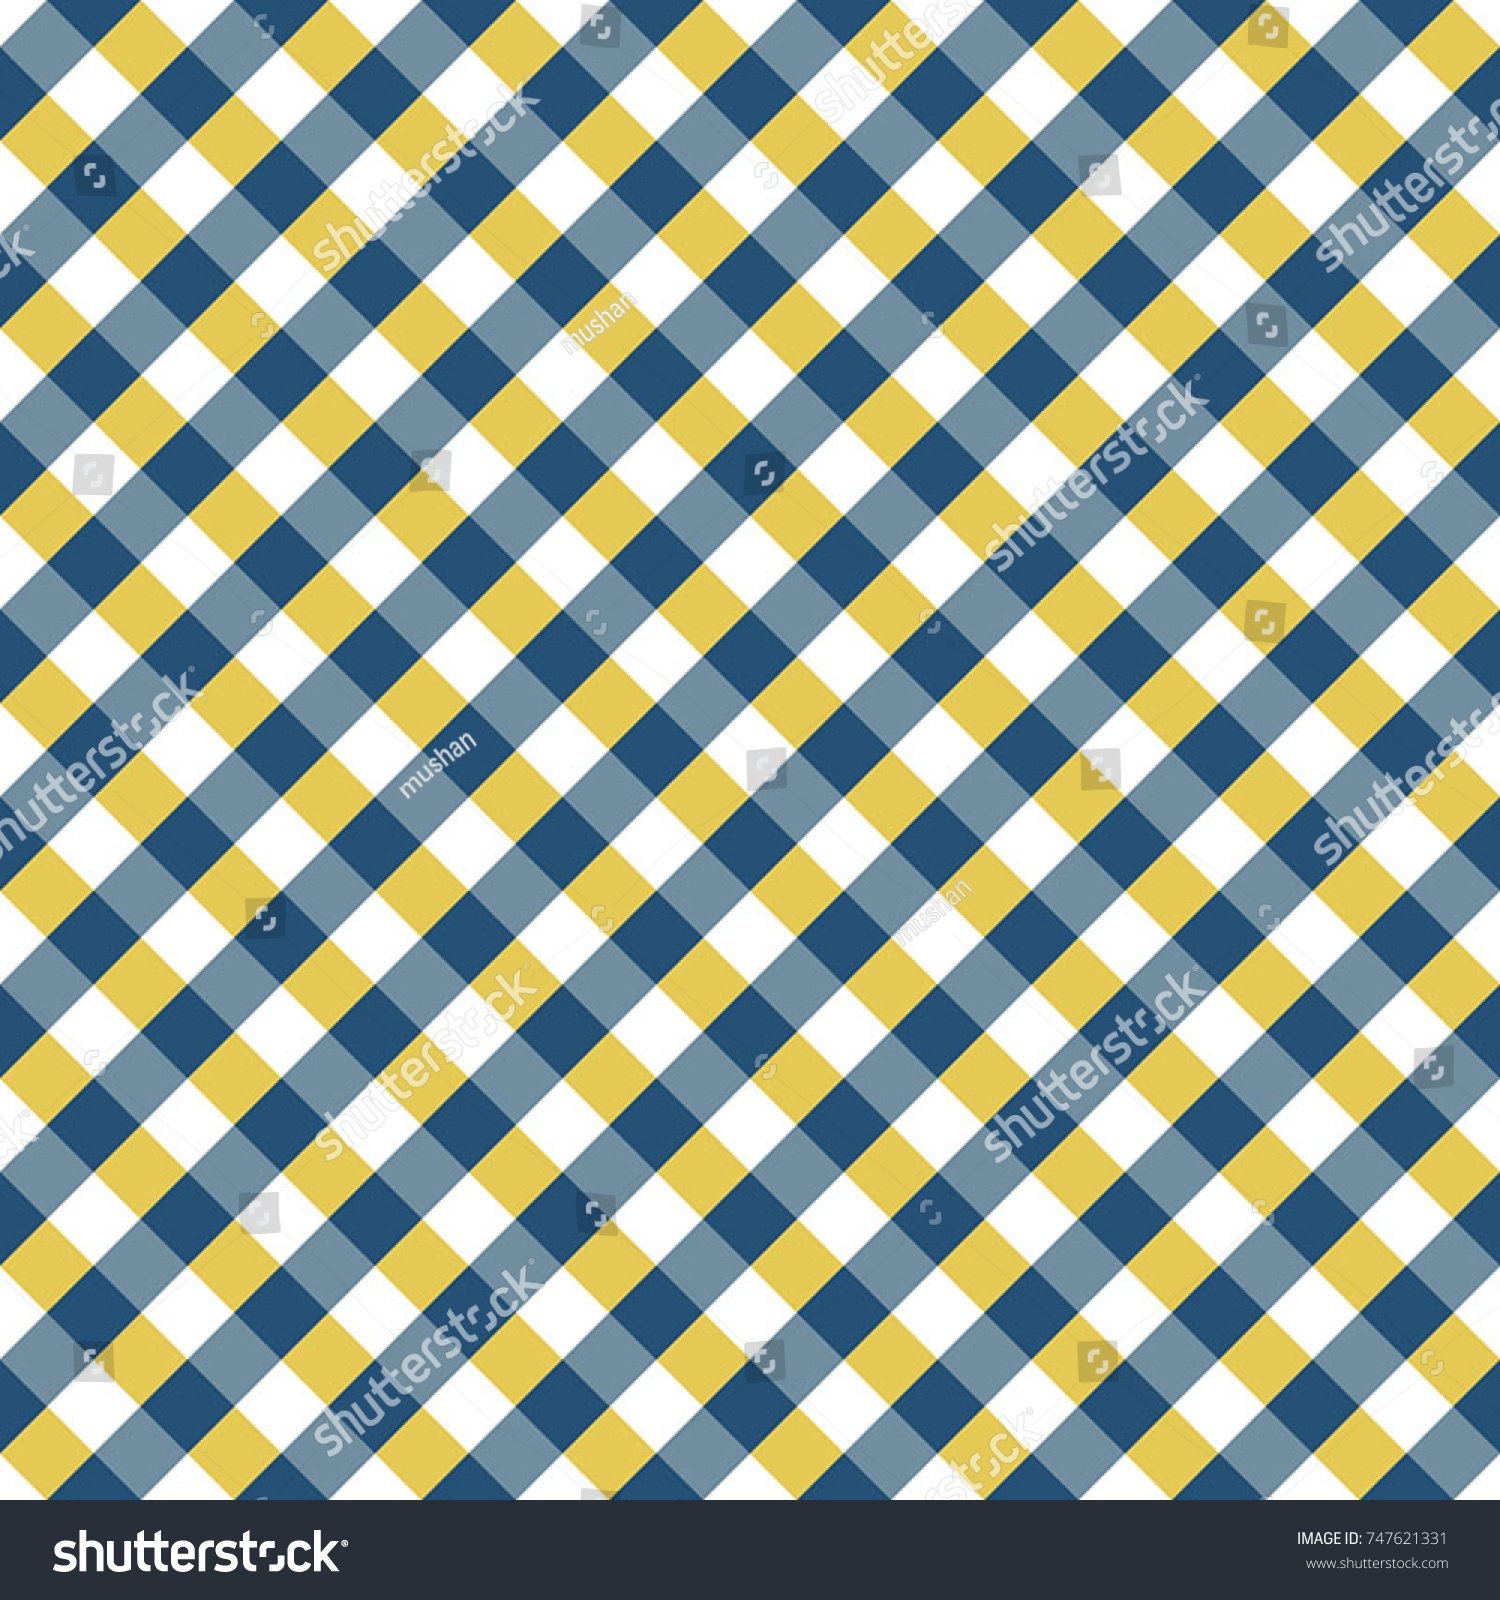 Blue And Yellow Gingham Tablecloth Pattern. Seamless Diagonal  Rhombus/Squares Texture